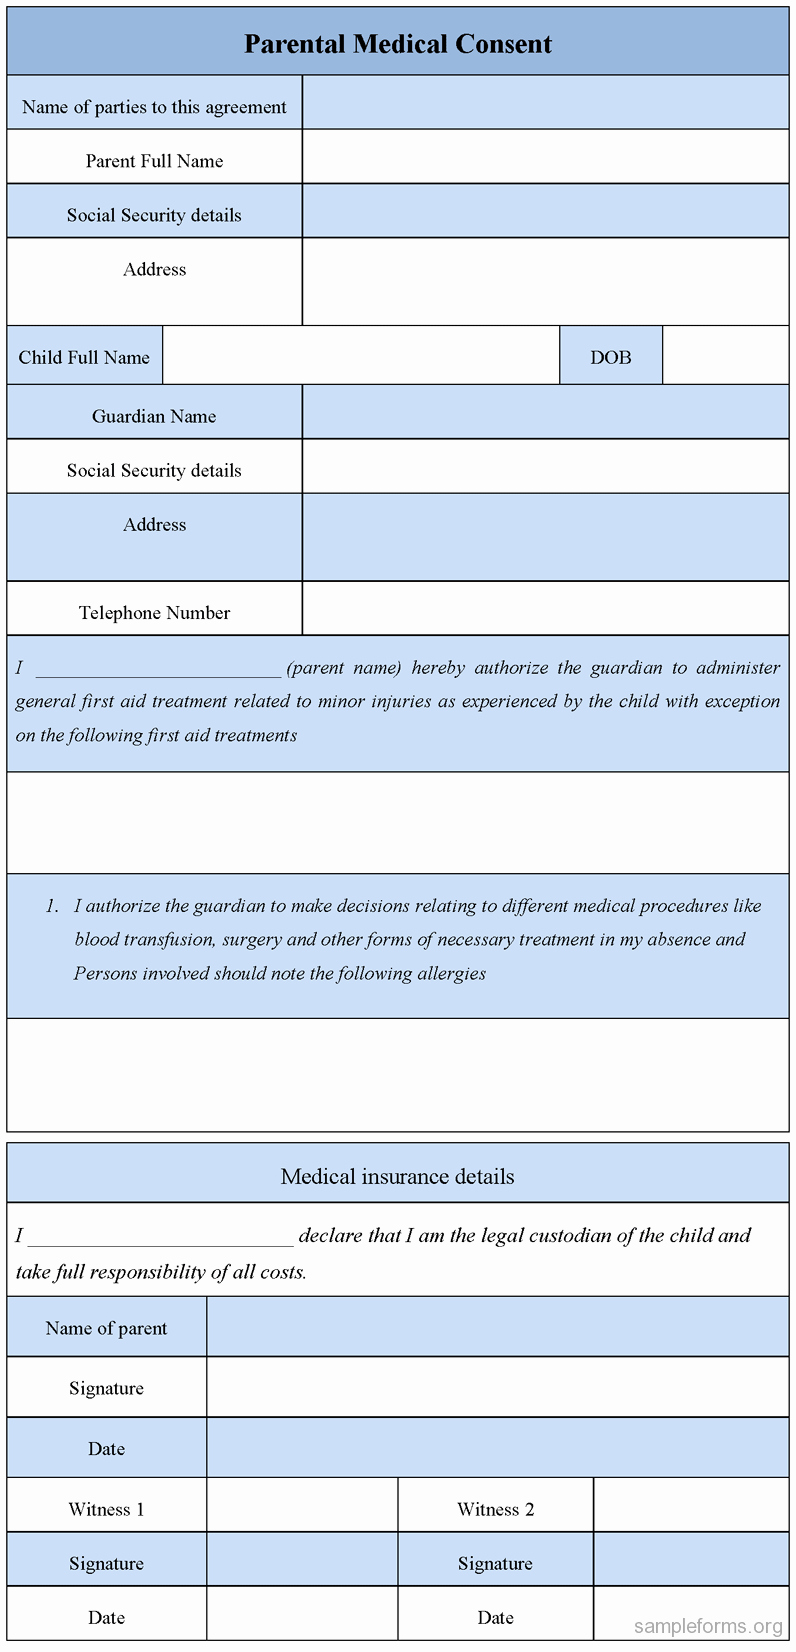 Parental Medical Consent form Sample forms